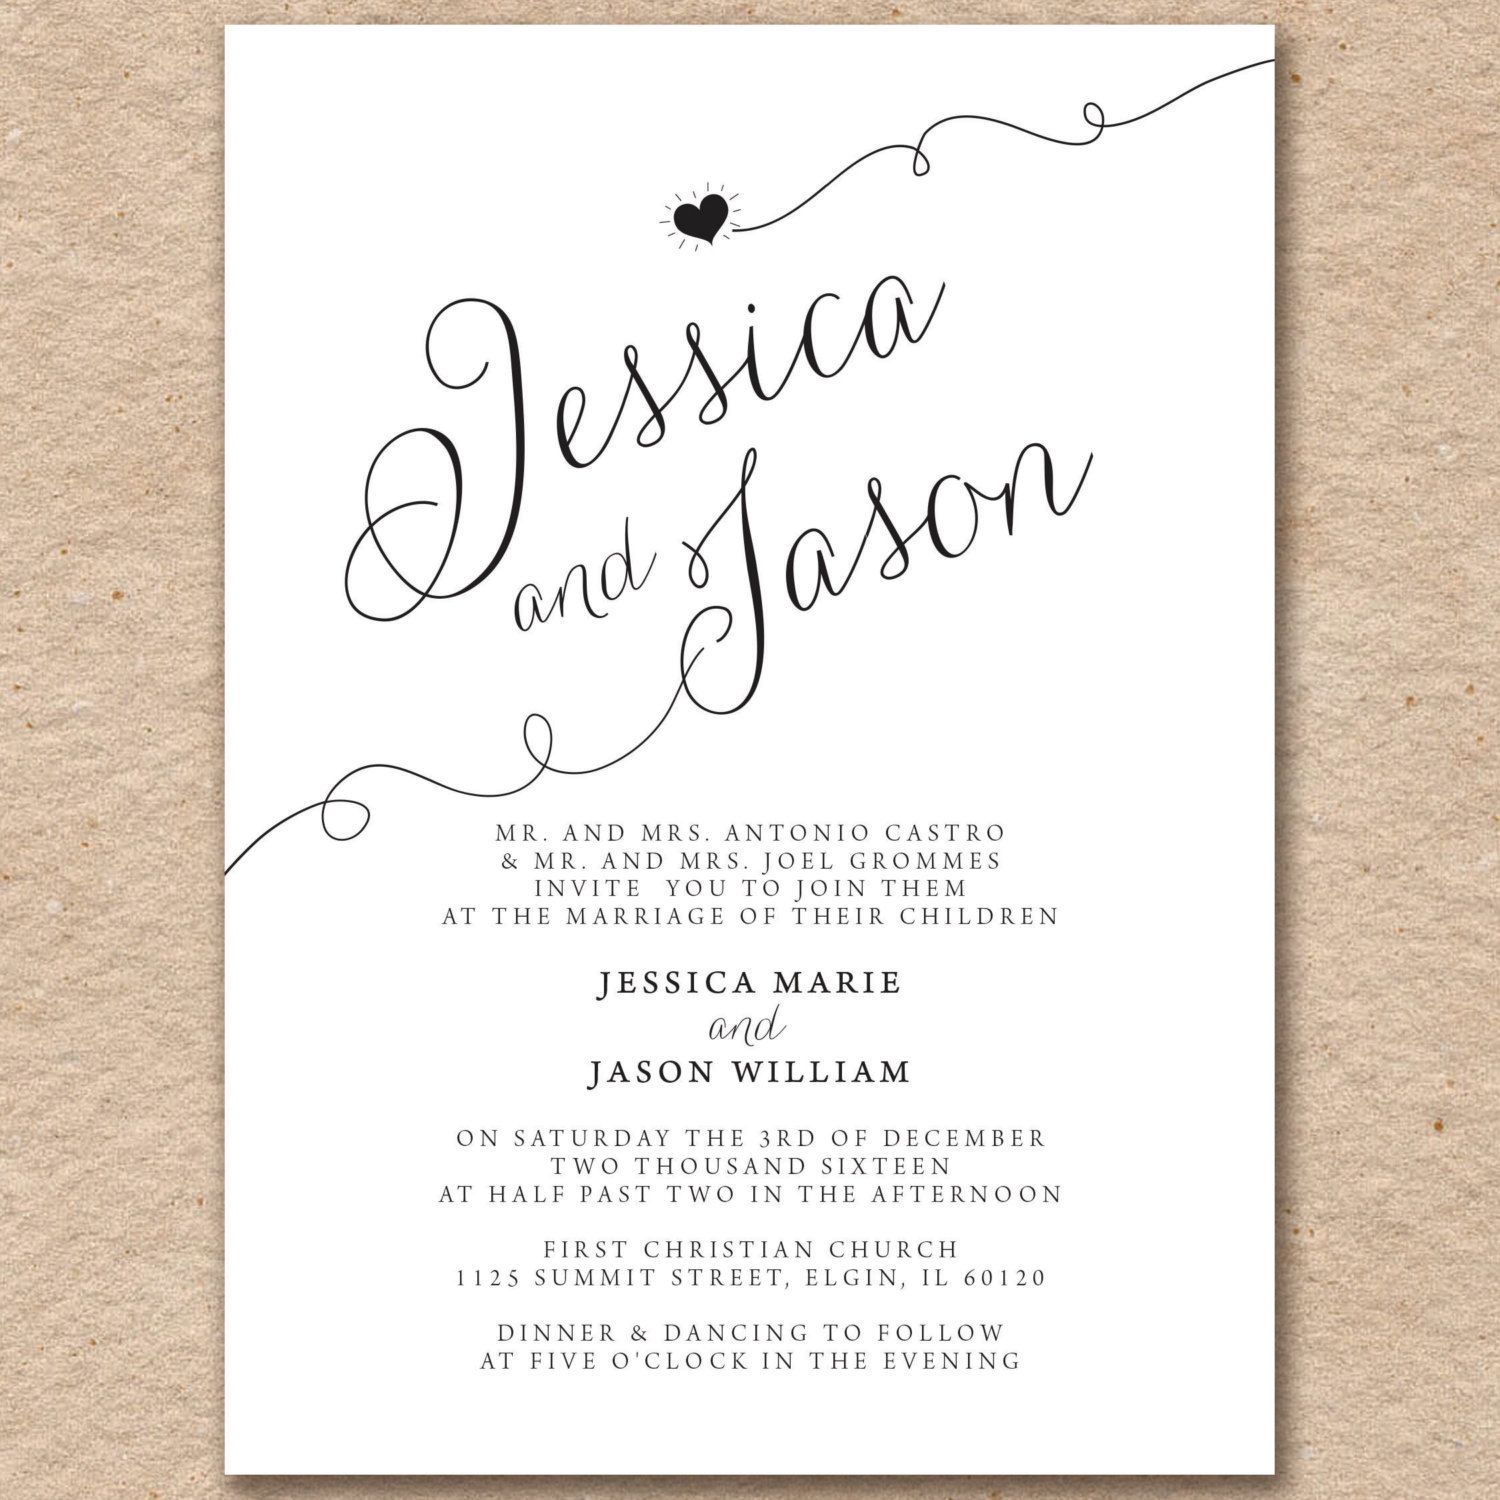 Simple Black And White Wedding Invitation Set Sweetheart Design